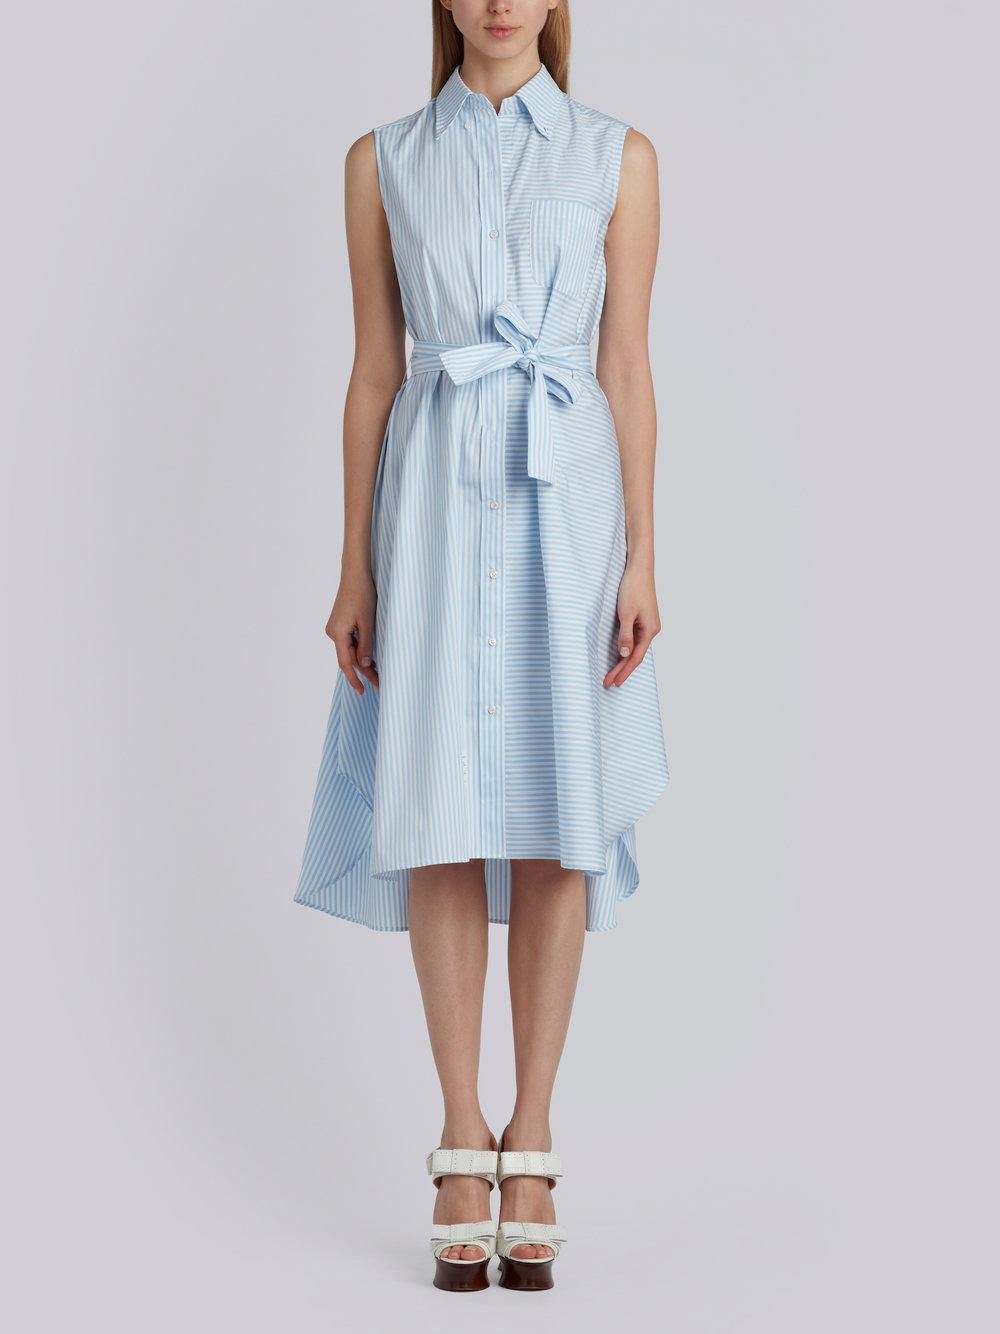 Sleeveless A-line Belted Shirtdress With Funmix Stripe Placement In University Stripe Poplin - Blue Thom Browne Eg2twtcw